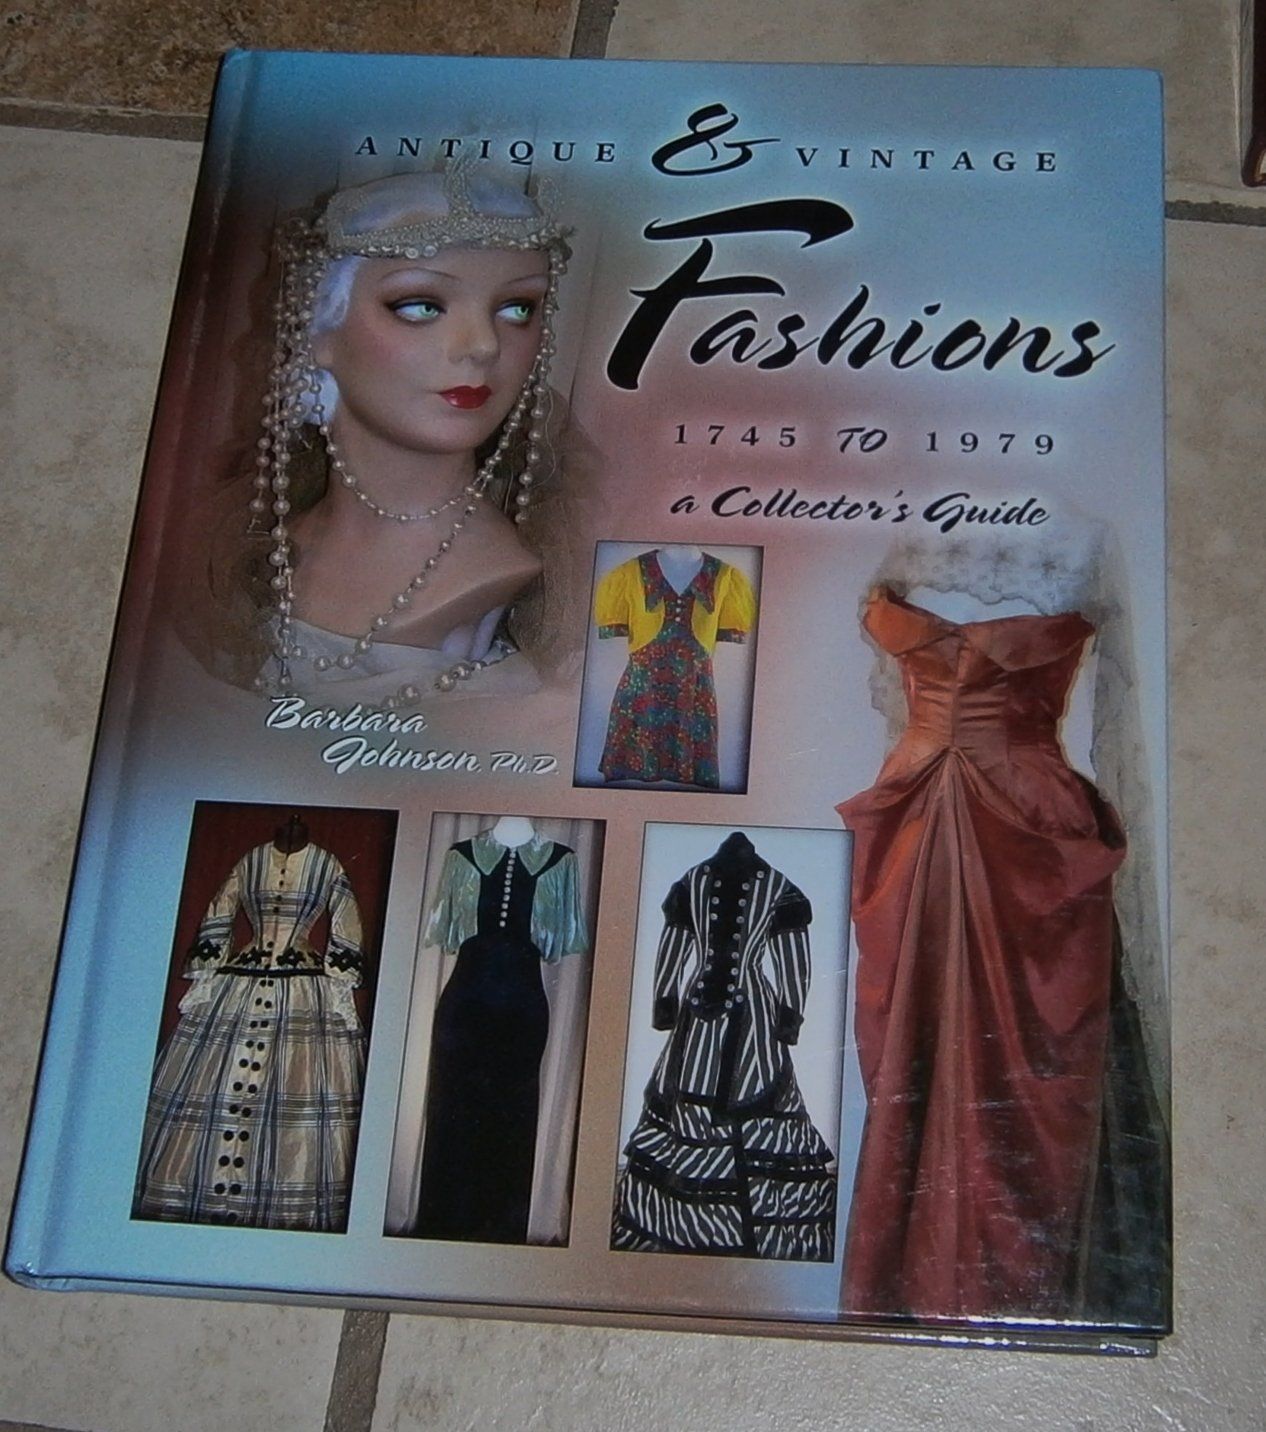 Antique & Vintage Fashions 1745 to 1979: A Collector's Guide Johnson